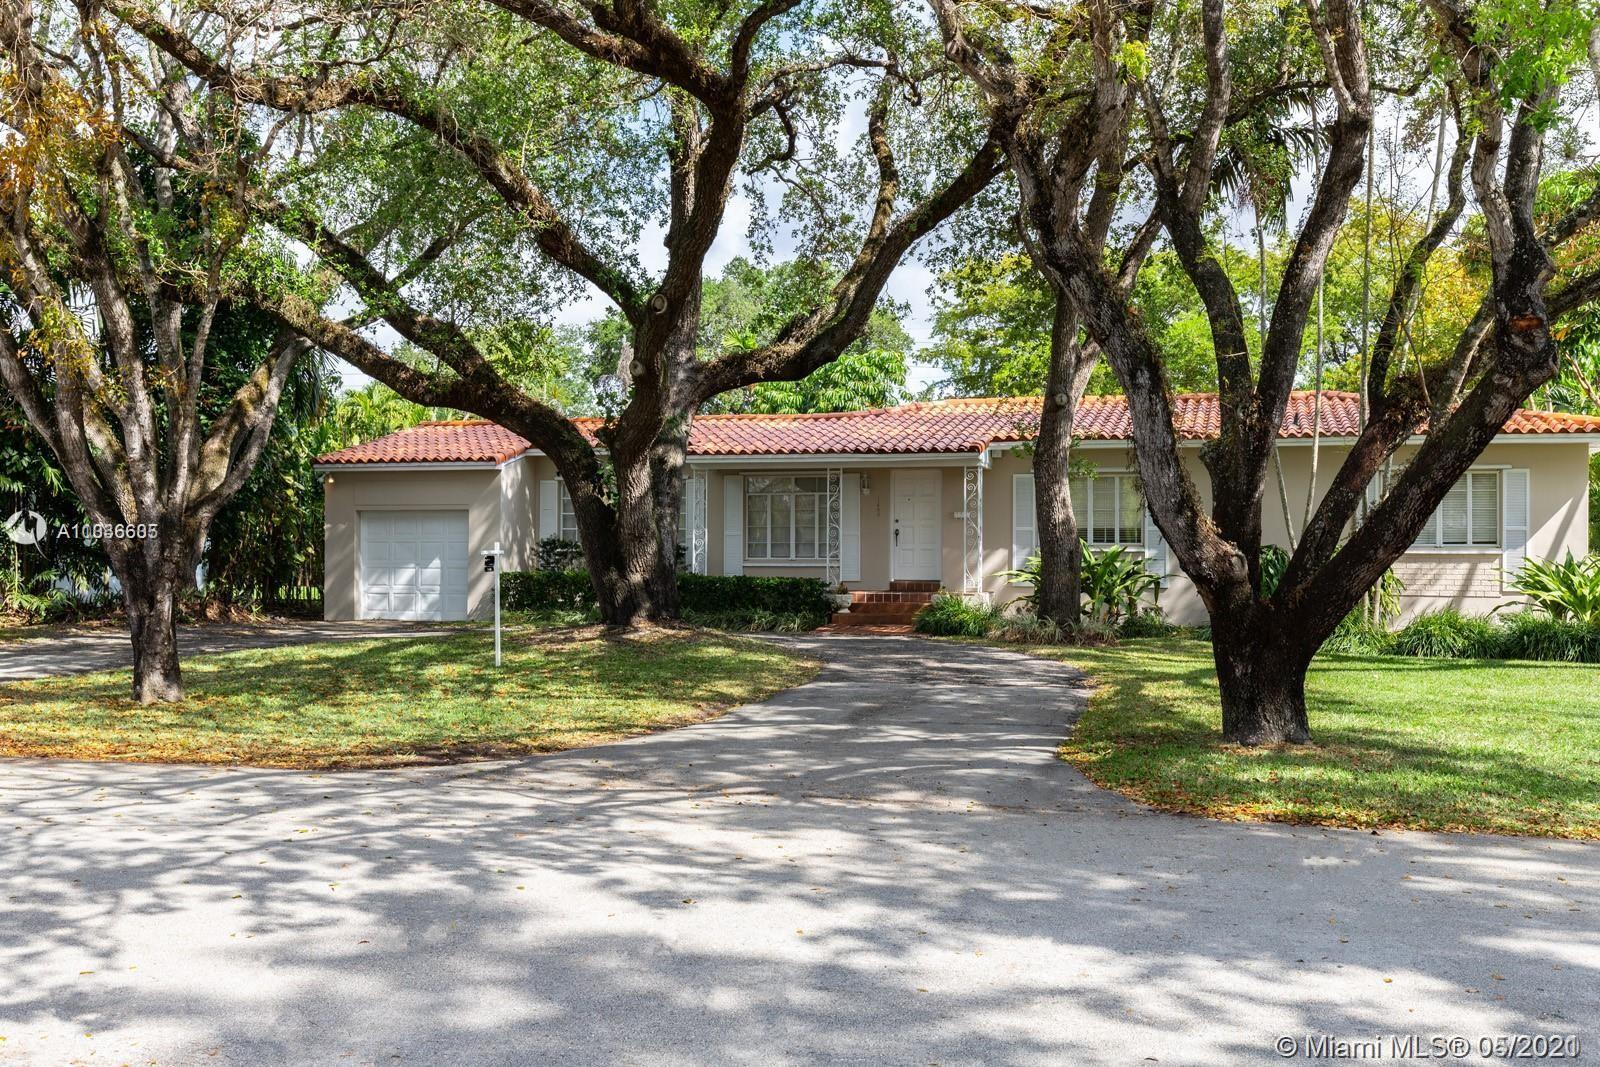 Excellent opportunity to update or build your dream home.  This home is located on a quiet tree-line